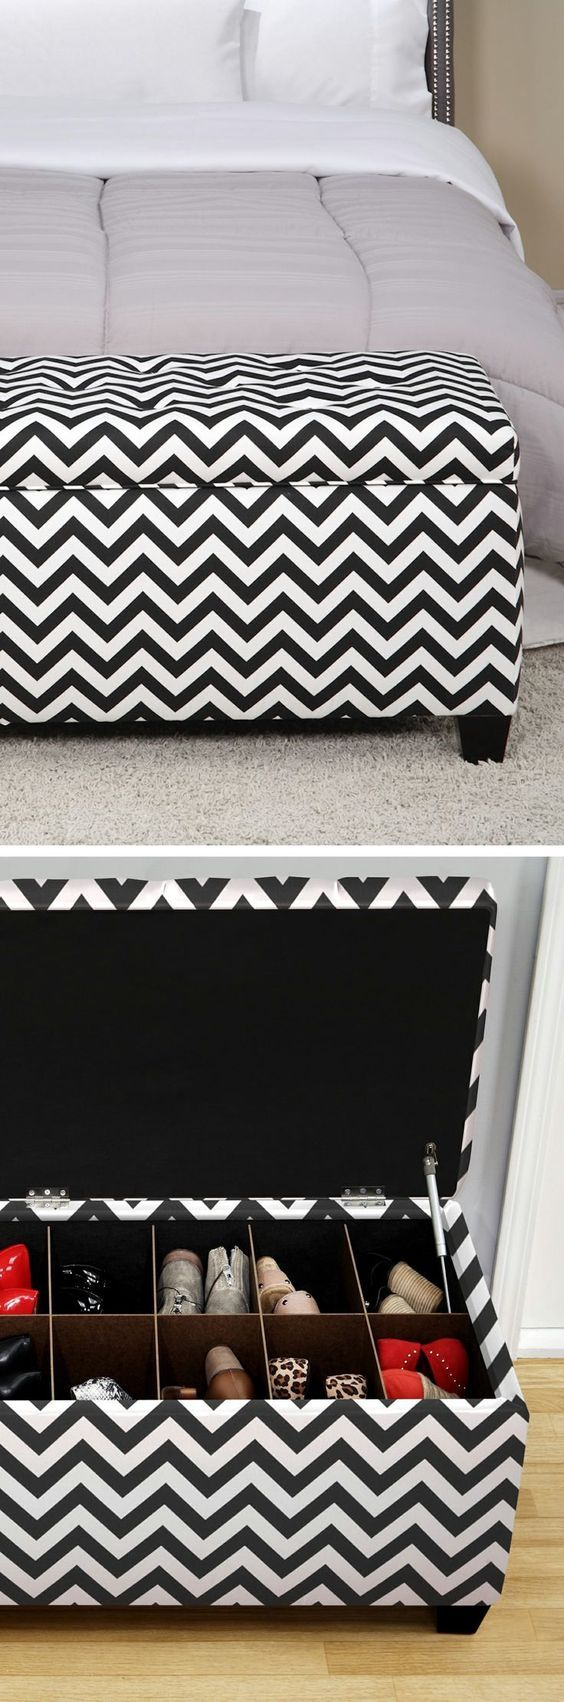 Chevron shoe storage ottoman bench // Need this! So perfect for bedroom or hall organisation #furniture_design: